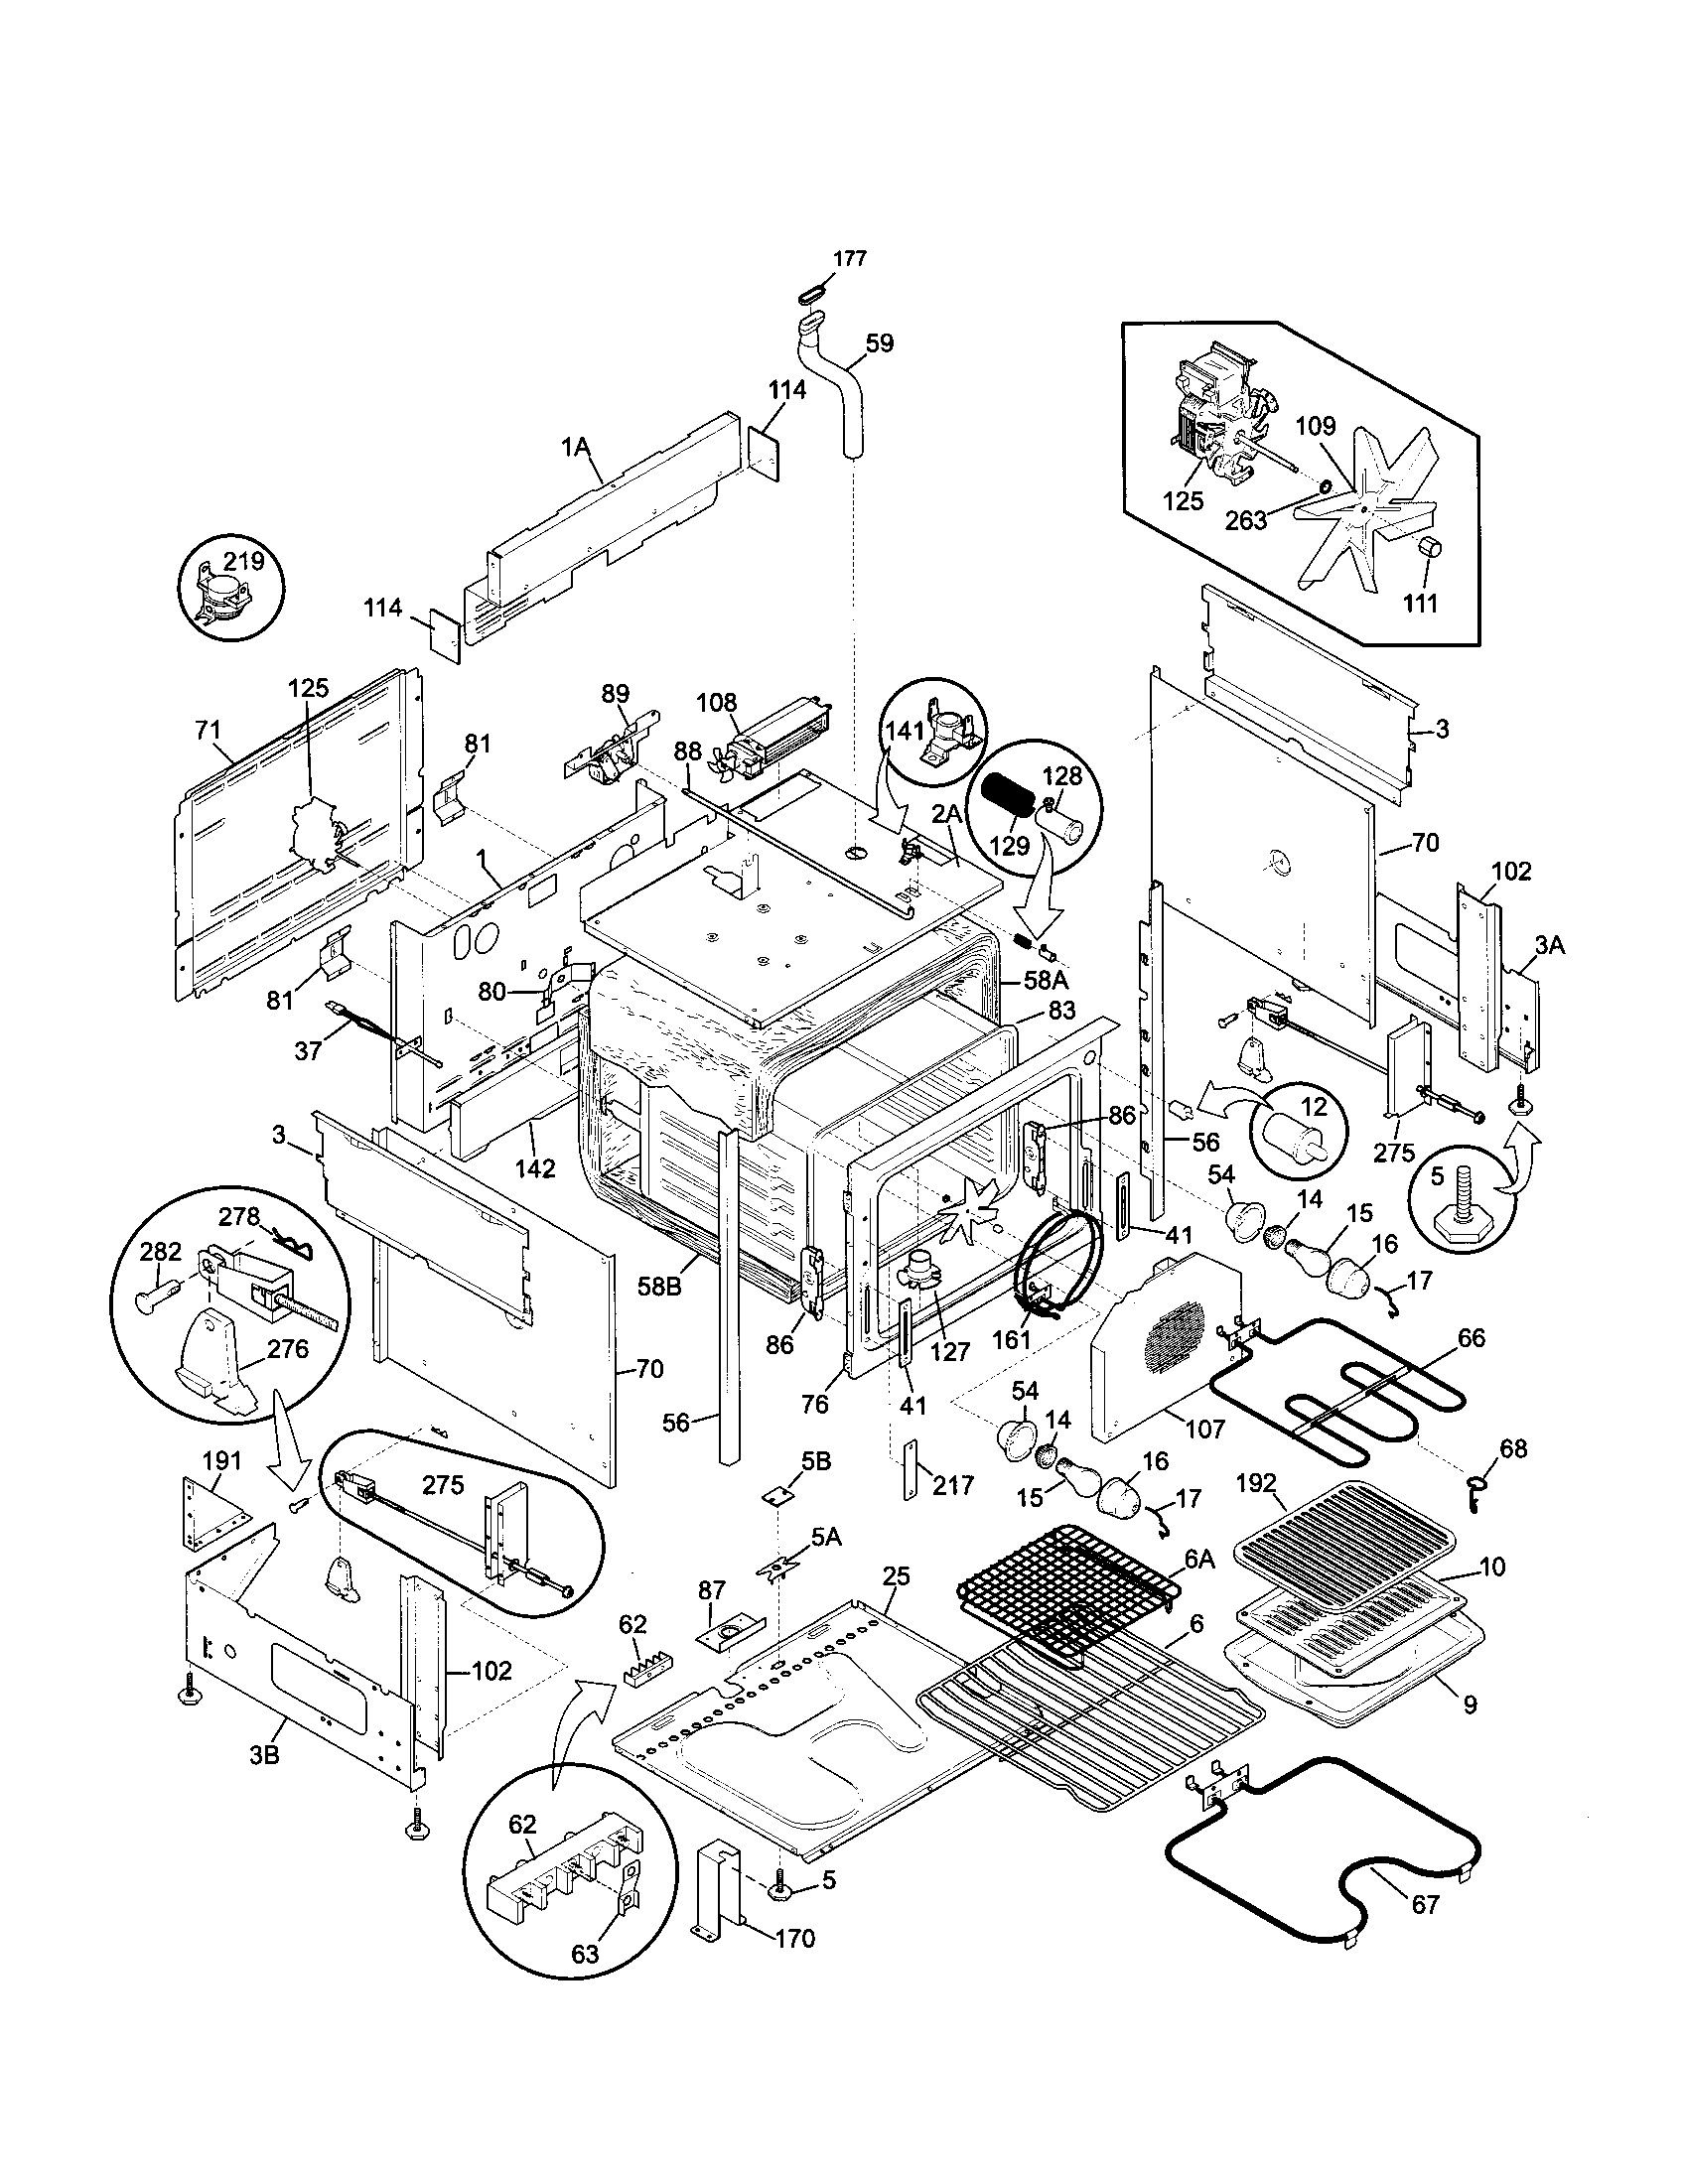 50 Kenmore Ultra Wash Dishwasher Model 665 Parts Diagram Ag4e | Diagram,  Kenmore, PartsPinterest